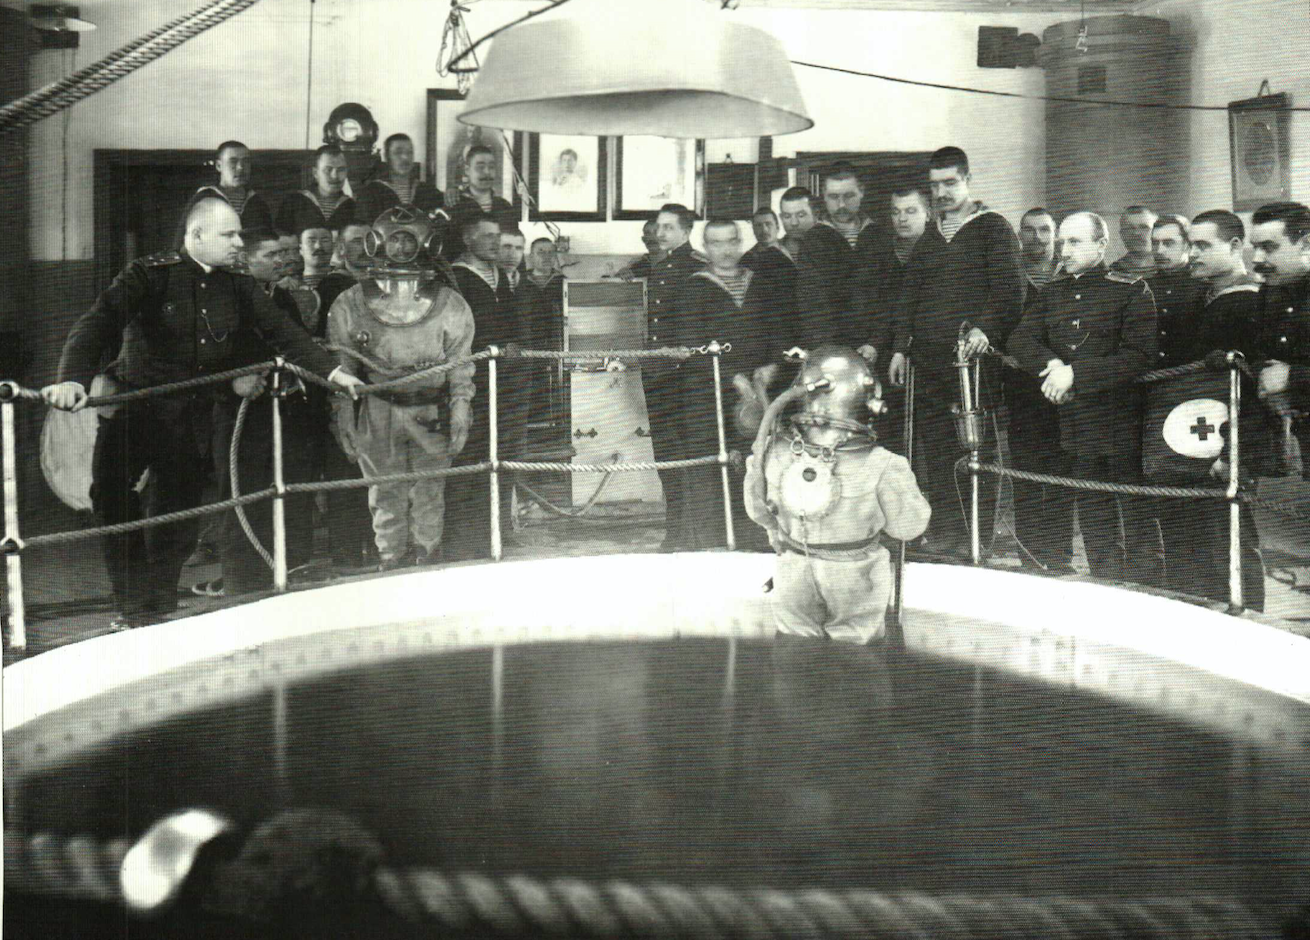 Russian Navy working diving exercises, 1913